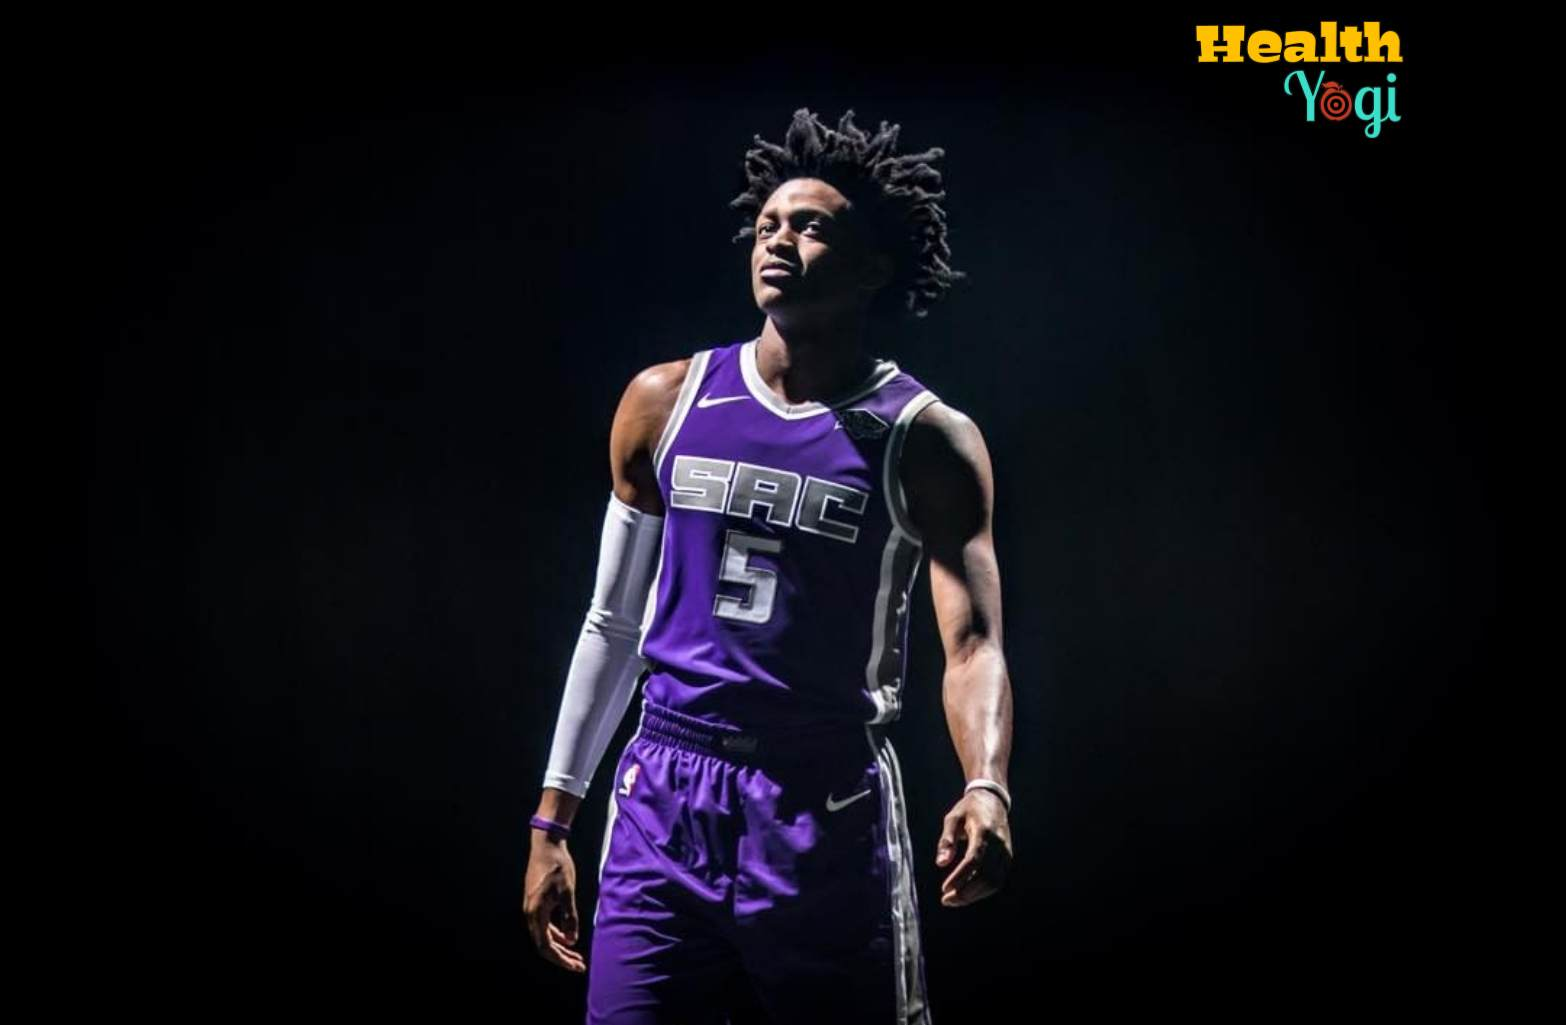 De'Aaron Fox exercise routine and meal plan